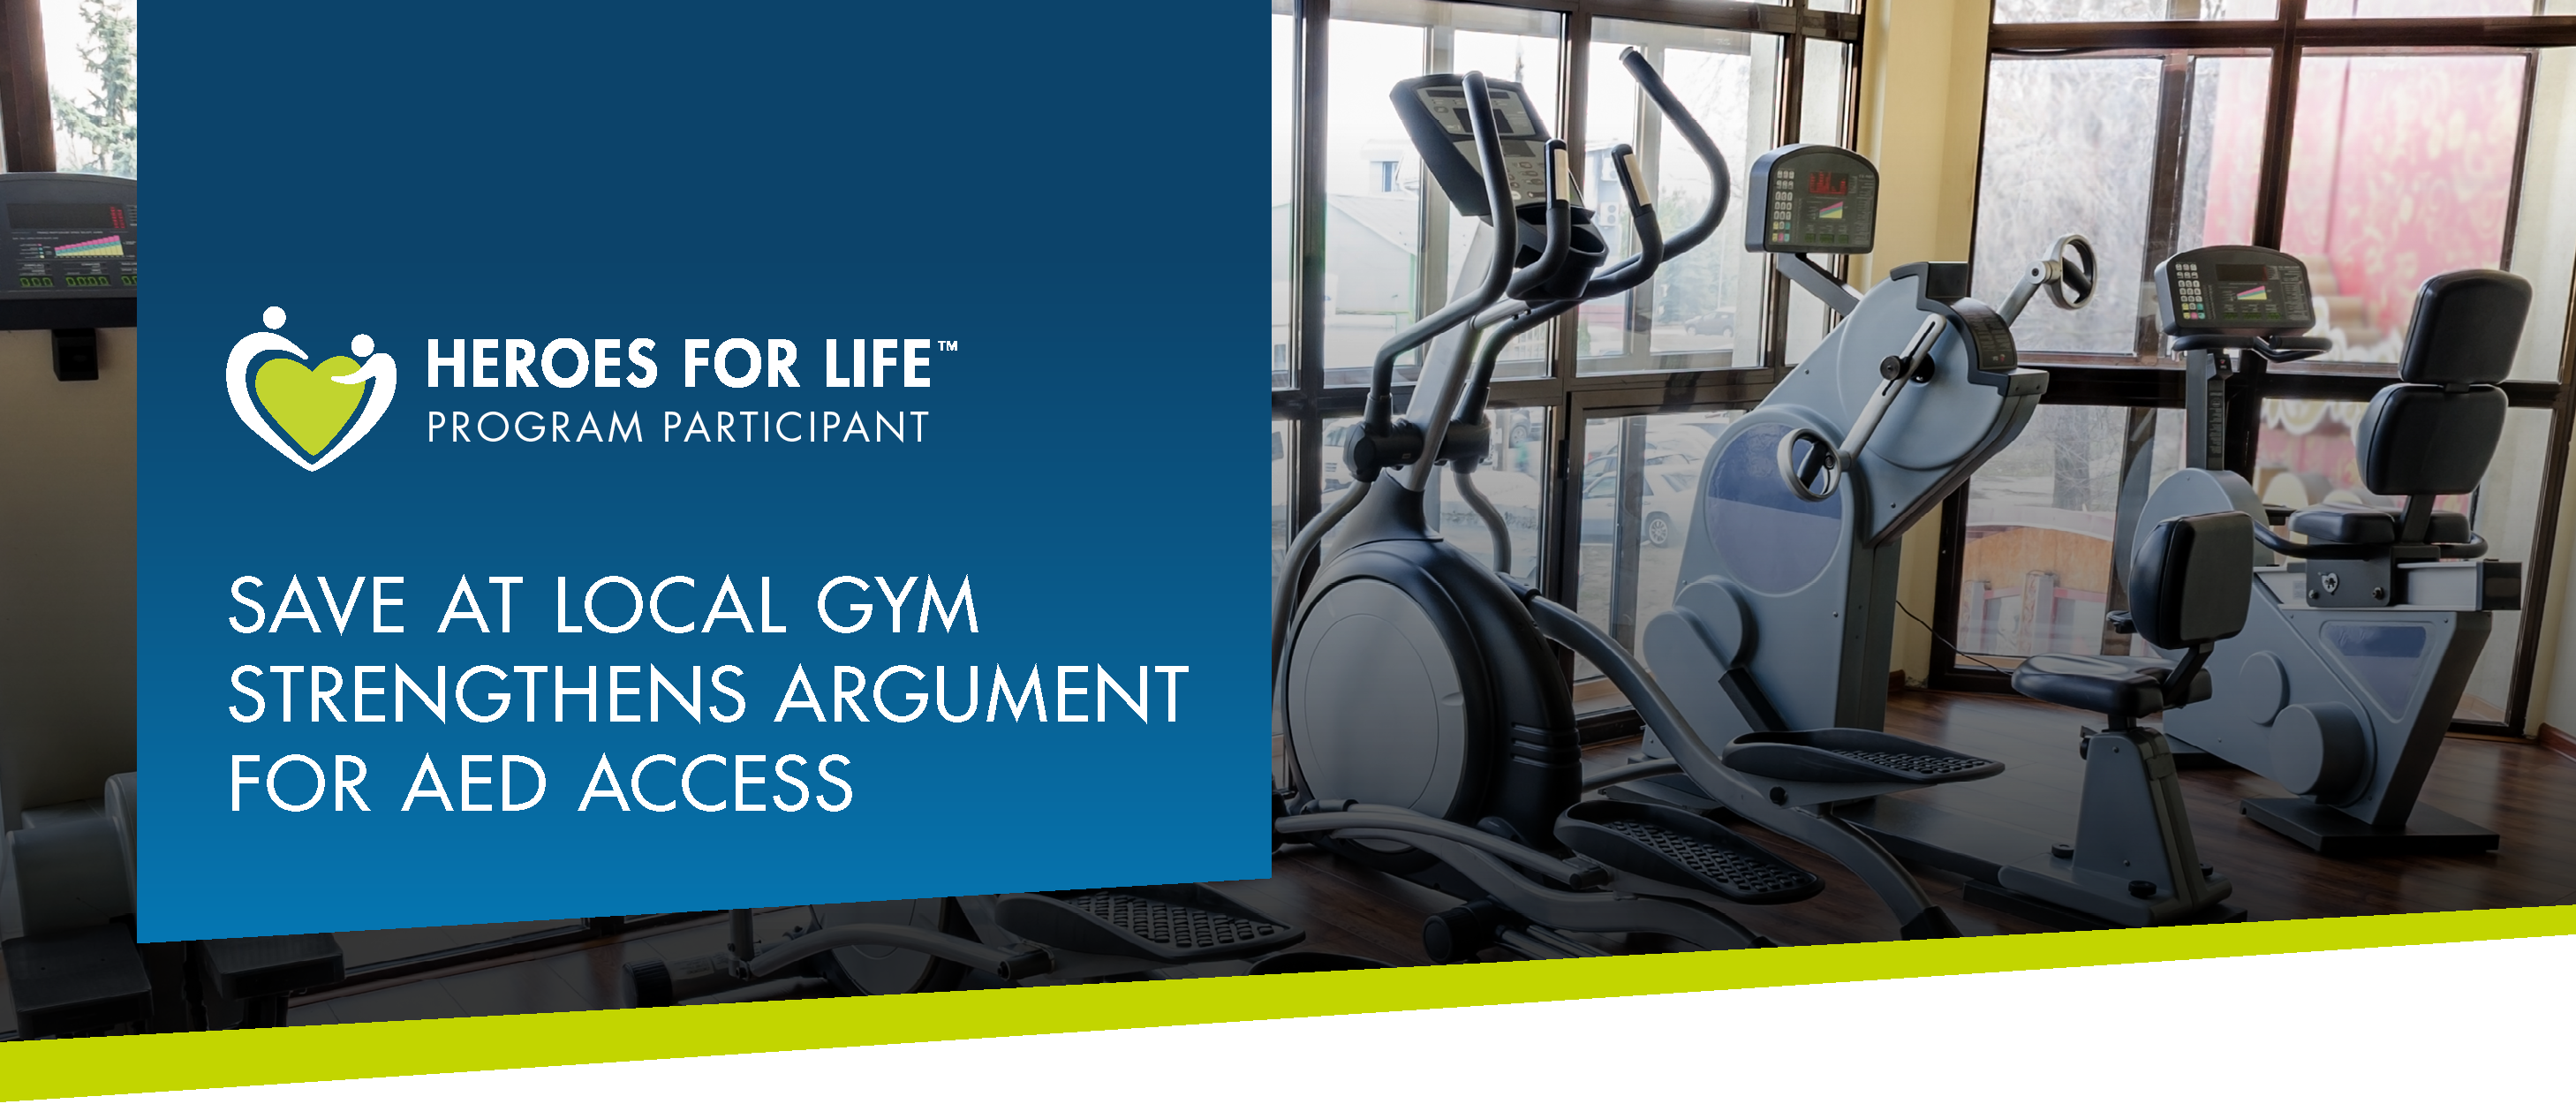 Save At Local Gym Strengthens Argument For AED Access